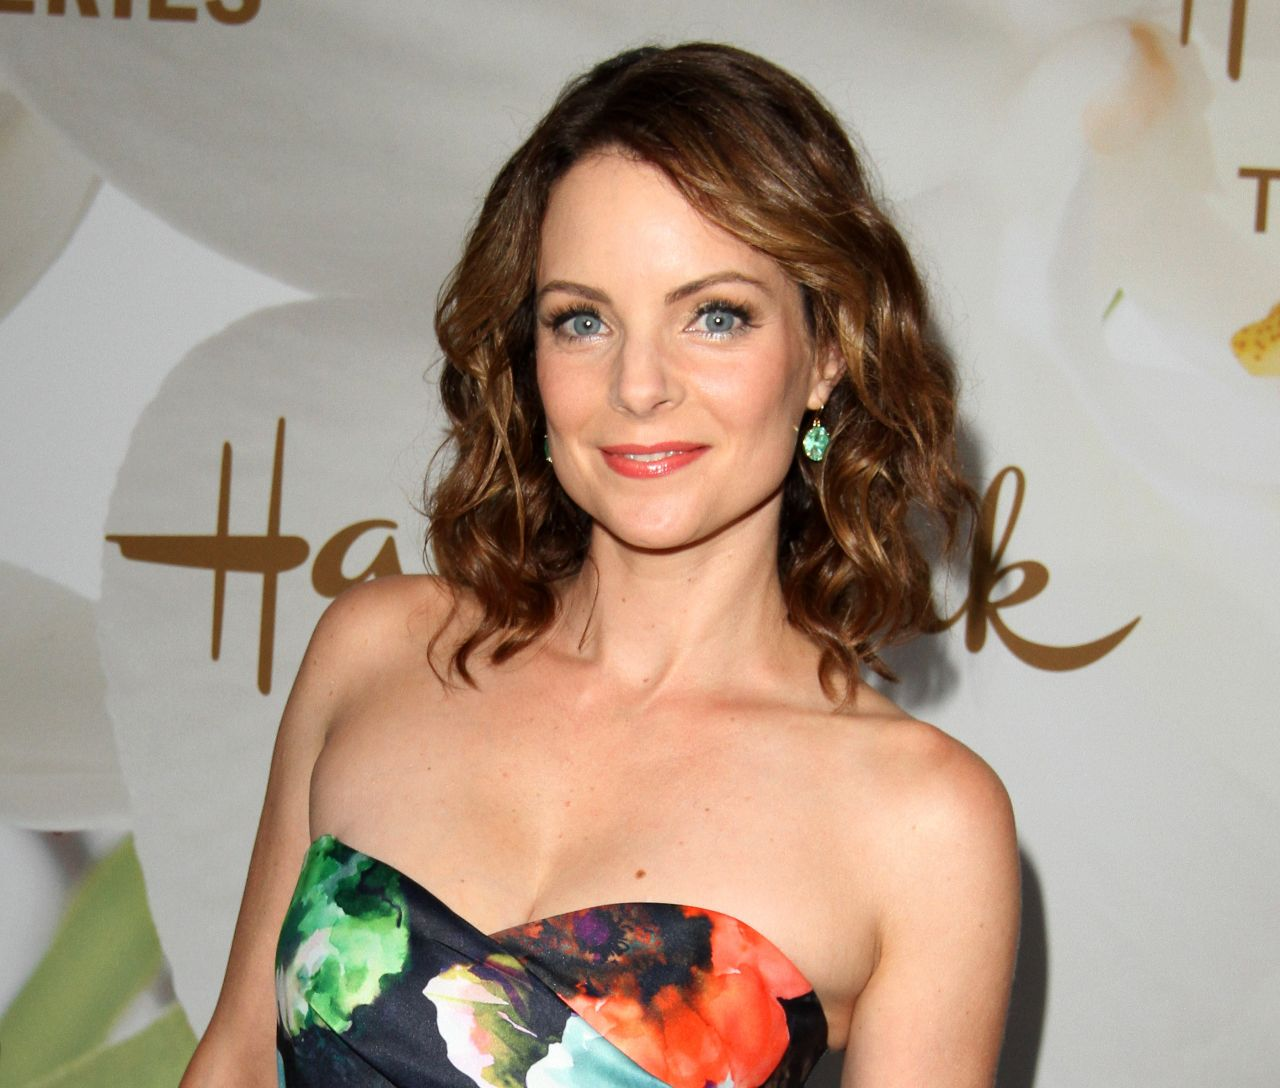 Kimberly Williams Paisley Latest Photos Celebmafia